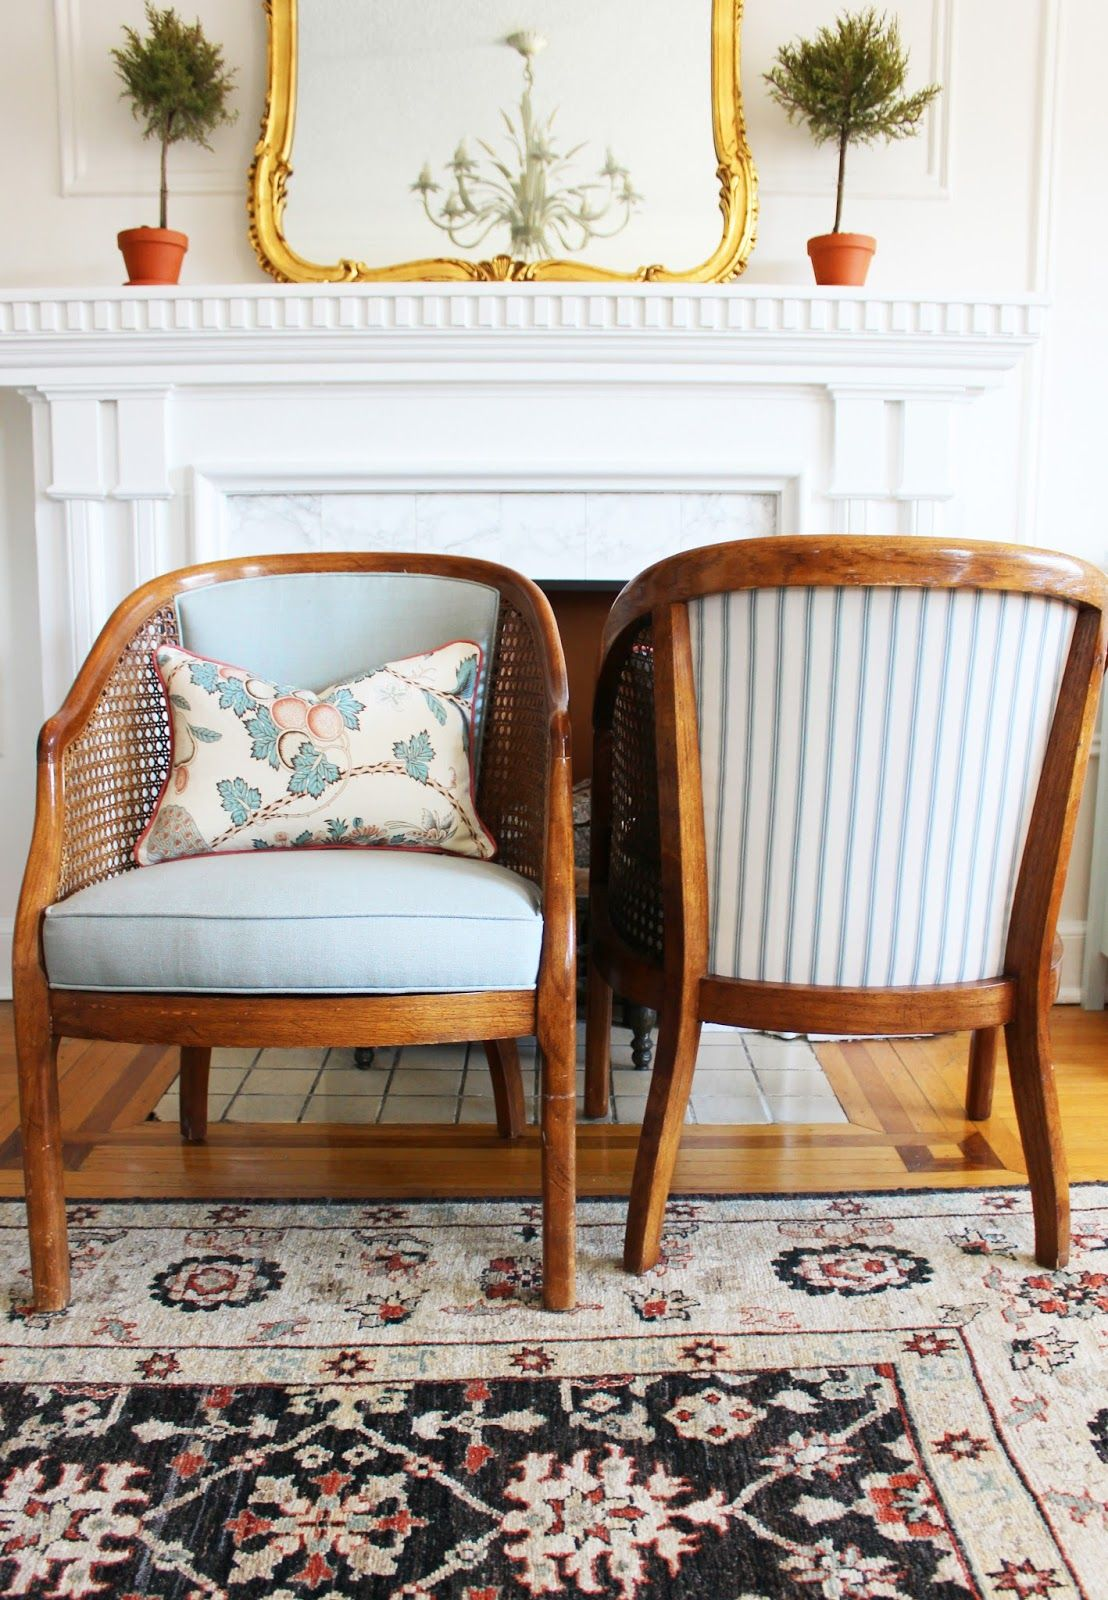 I Was Browsing Craigslist One Afternoon When Saw A Listing For Pair Of Vintage Cane Chairs On At The Local Okay Not